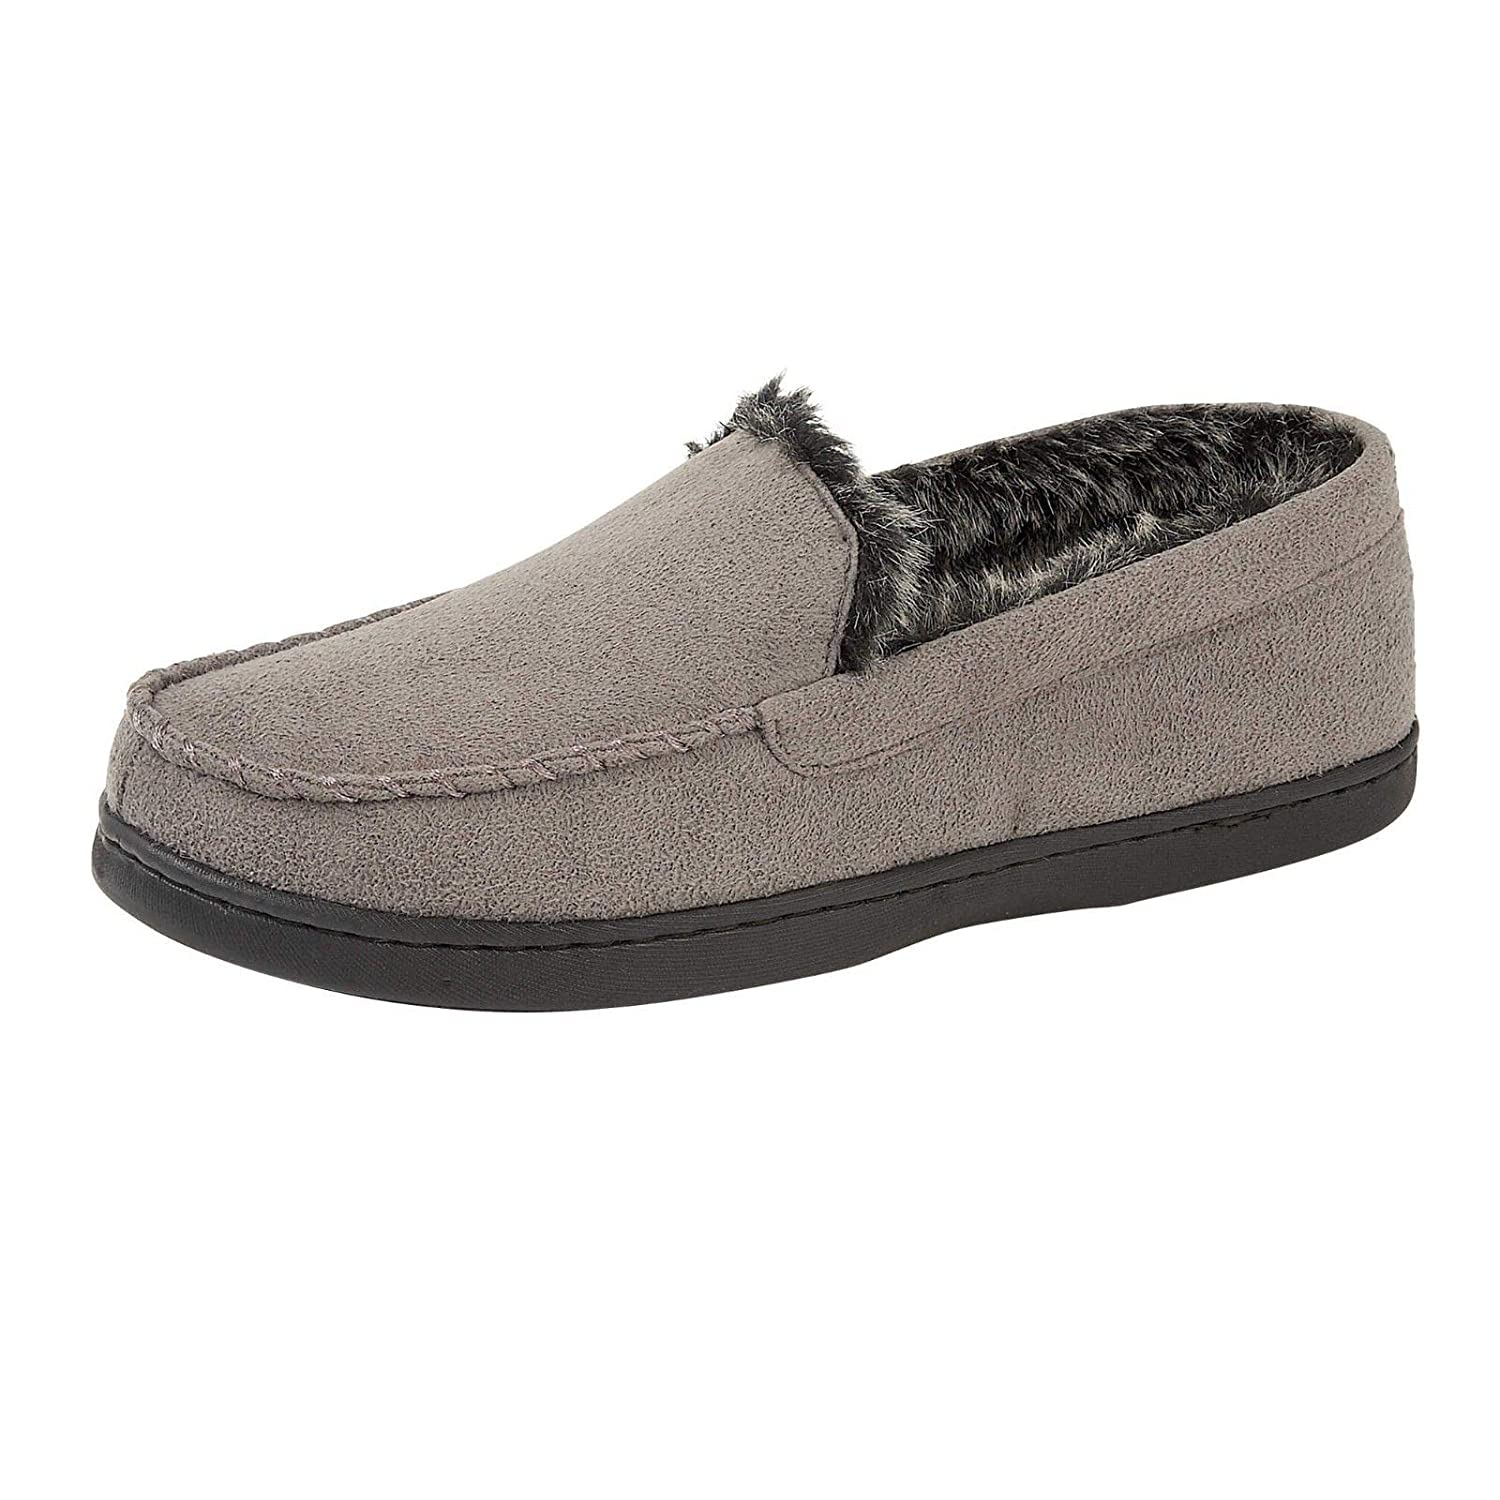 3a6a0140f44 Mens Stratton Moccasins Slippers Loafers Faux Suede Fur Lined Winter Shoes  Size  Amazon.co.uk  Shoes   Bags